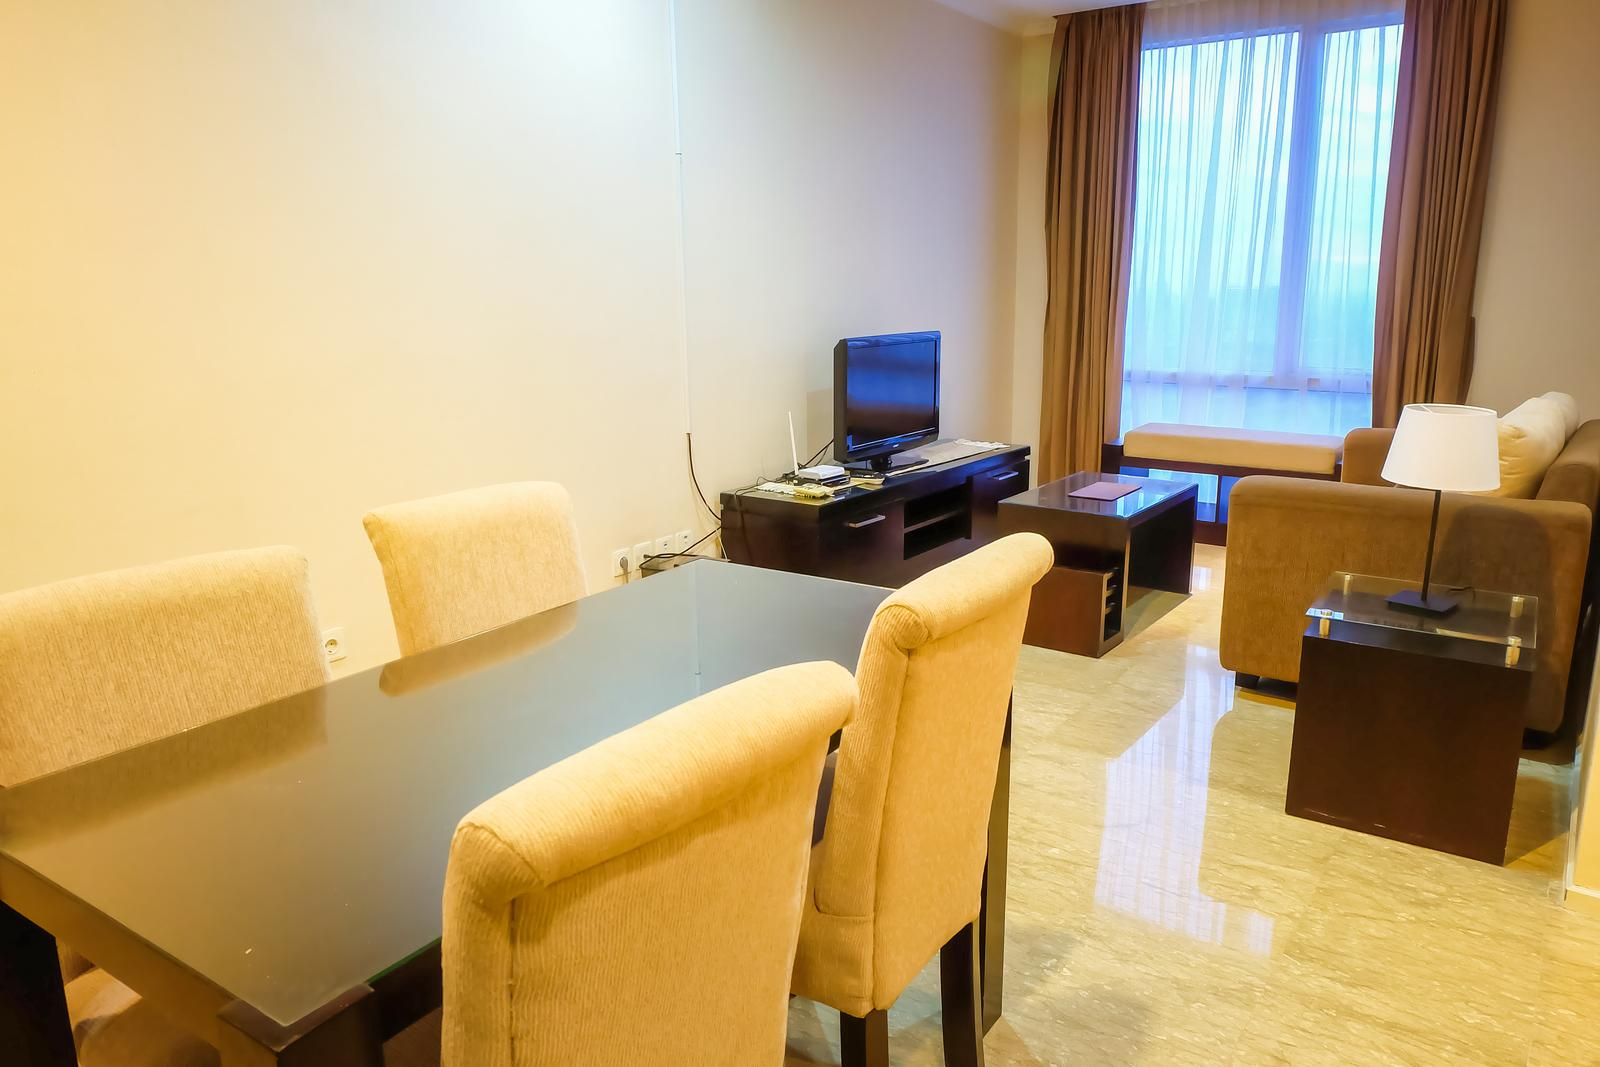 Apartemen FX Residence - Fantastic View 2BR Apartment at FX Residence Sudirman By Travelio